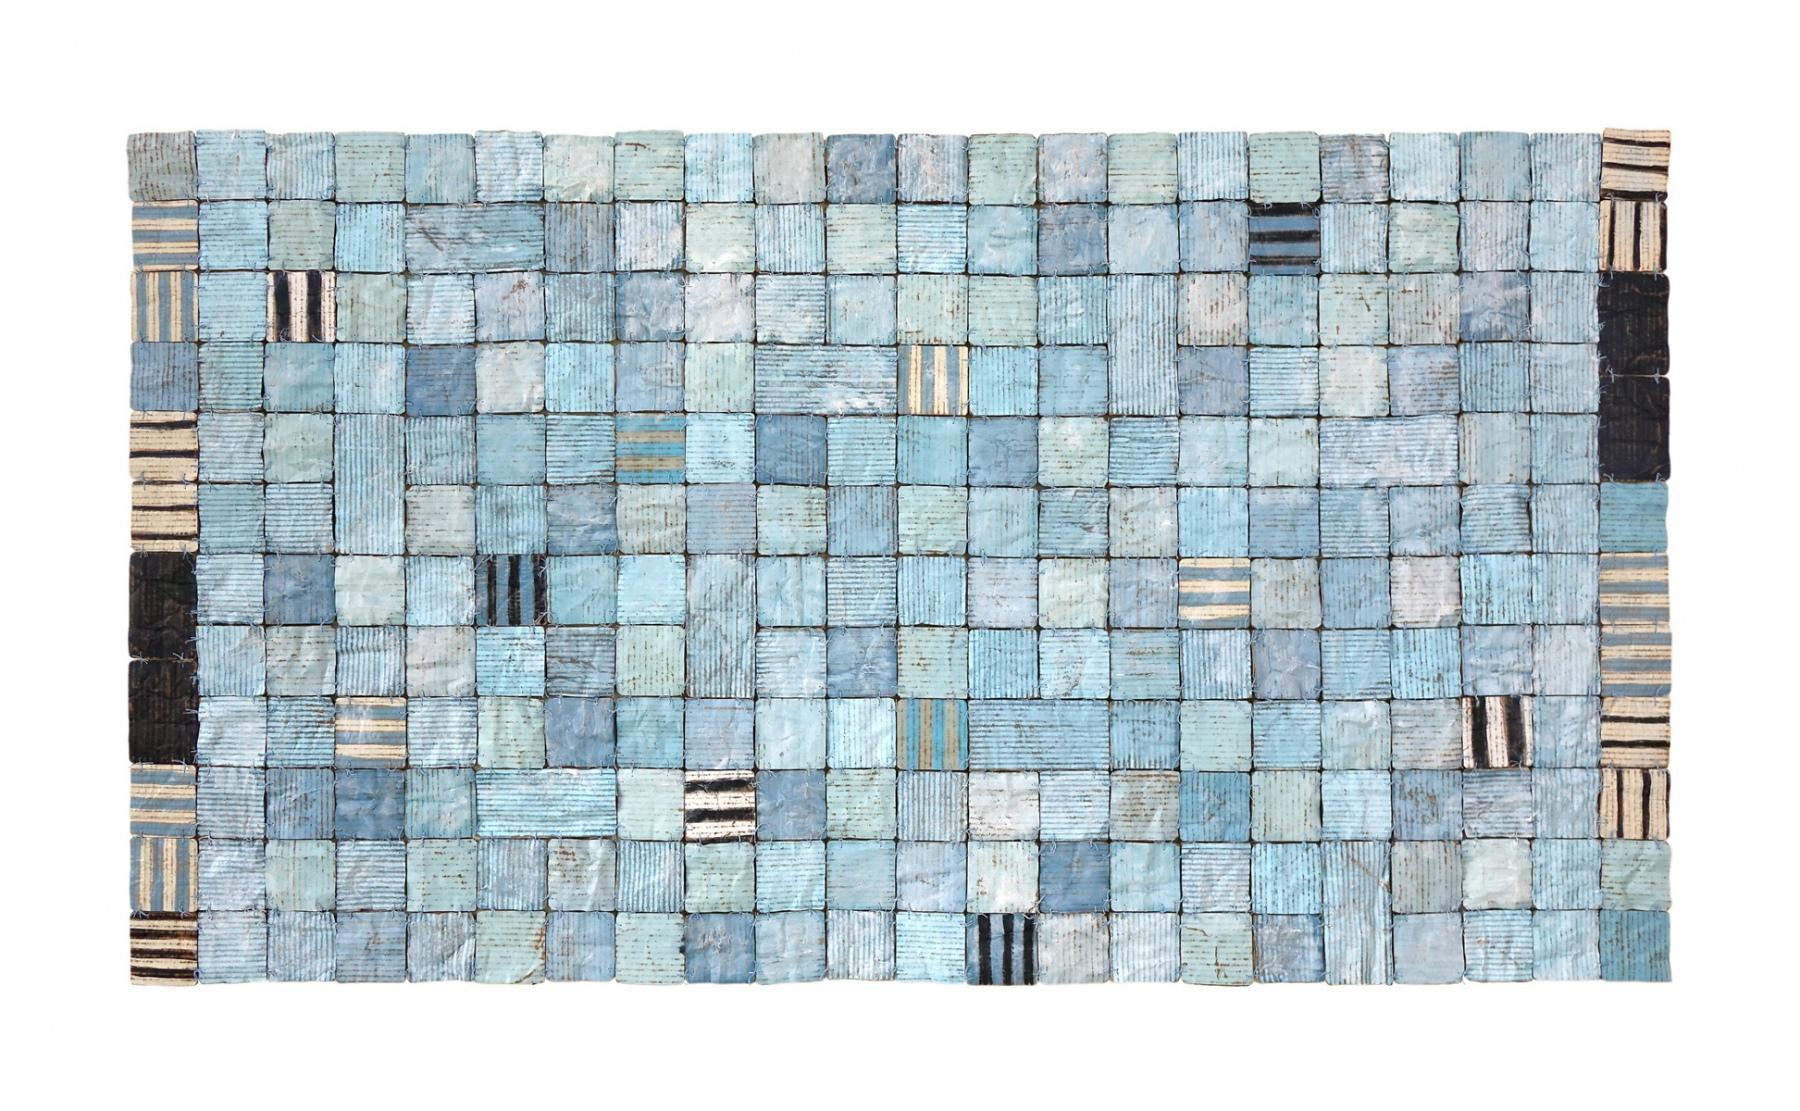 Big Blue Comfort (Abstract Mixed Media Stitched Grid Painting)